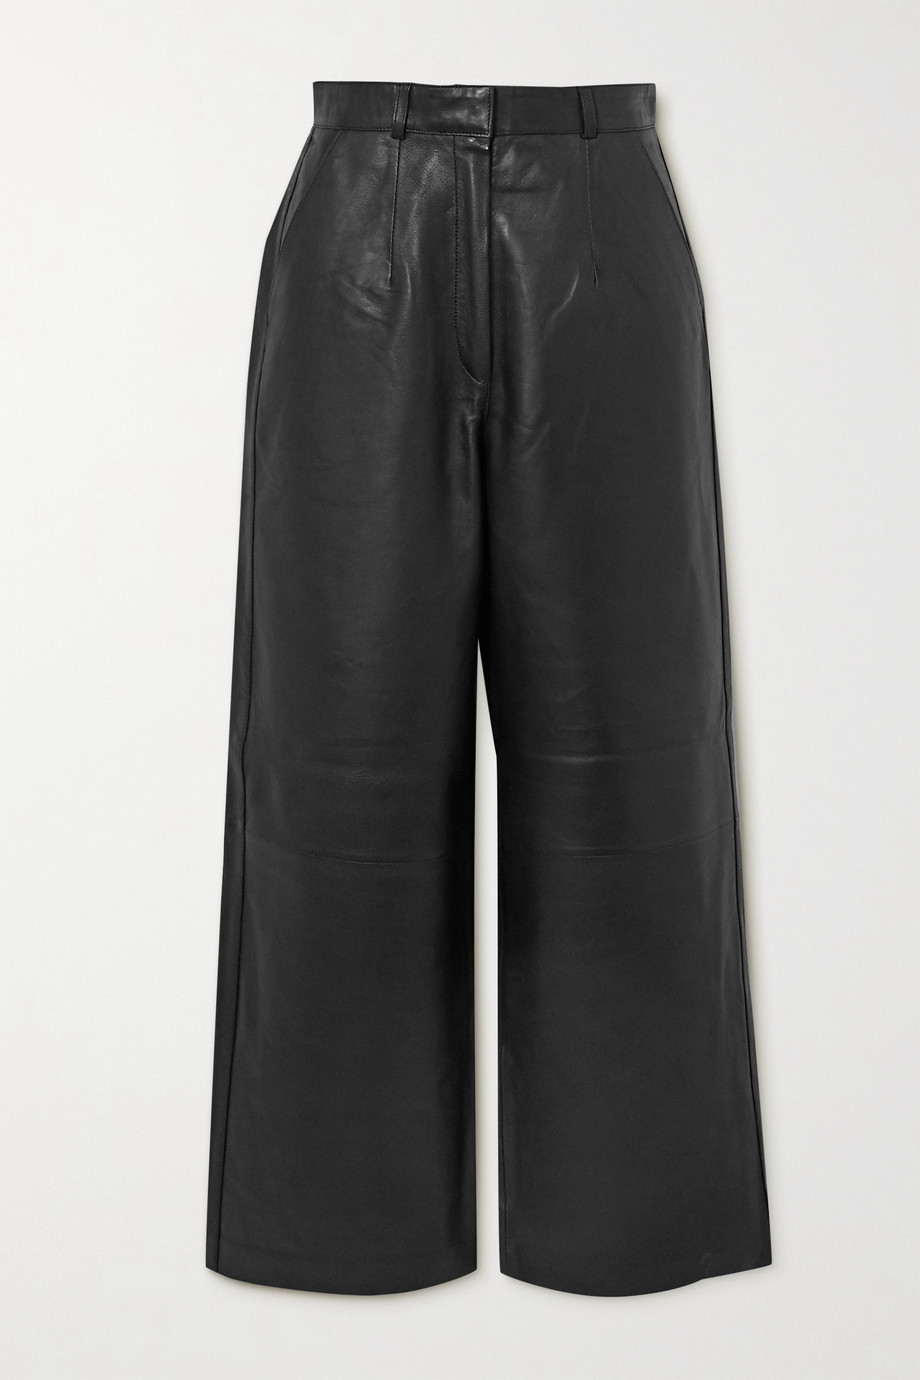 Envelope1976 + NET SUSTAIN Oslo leather wide-leg pants